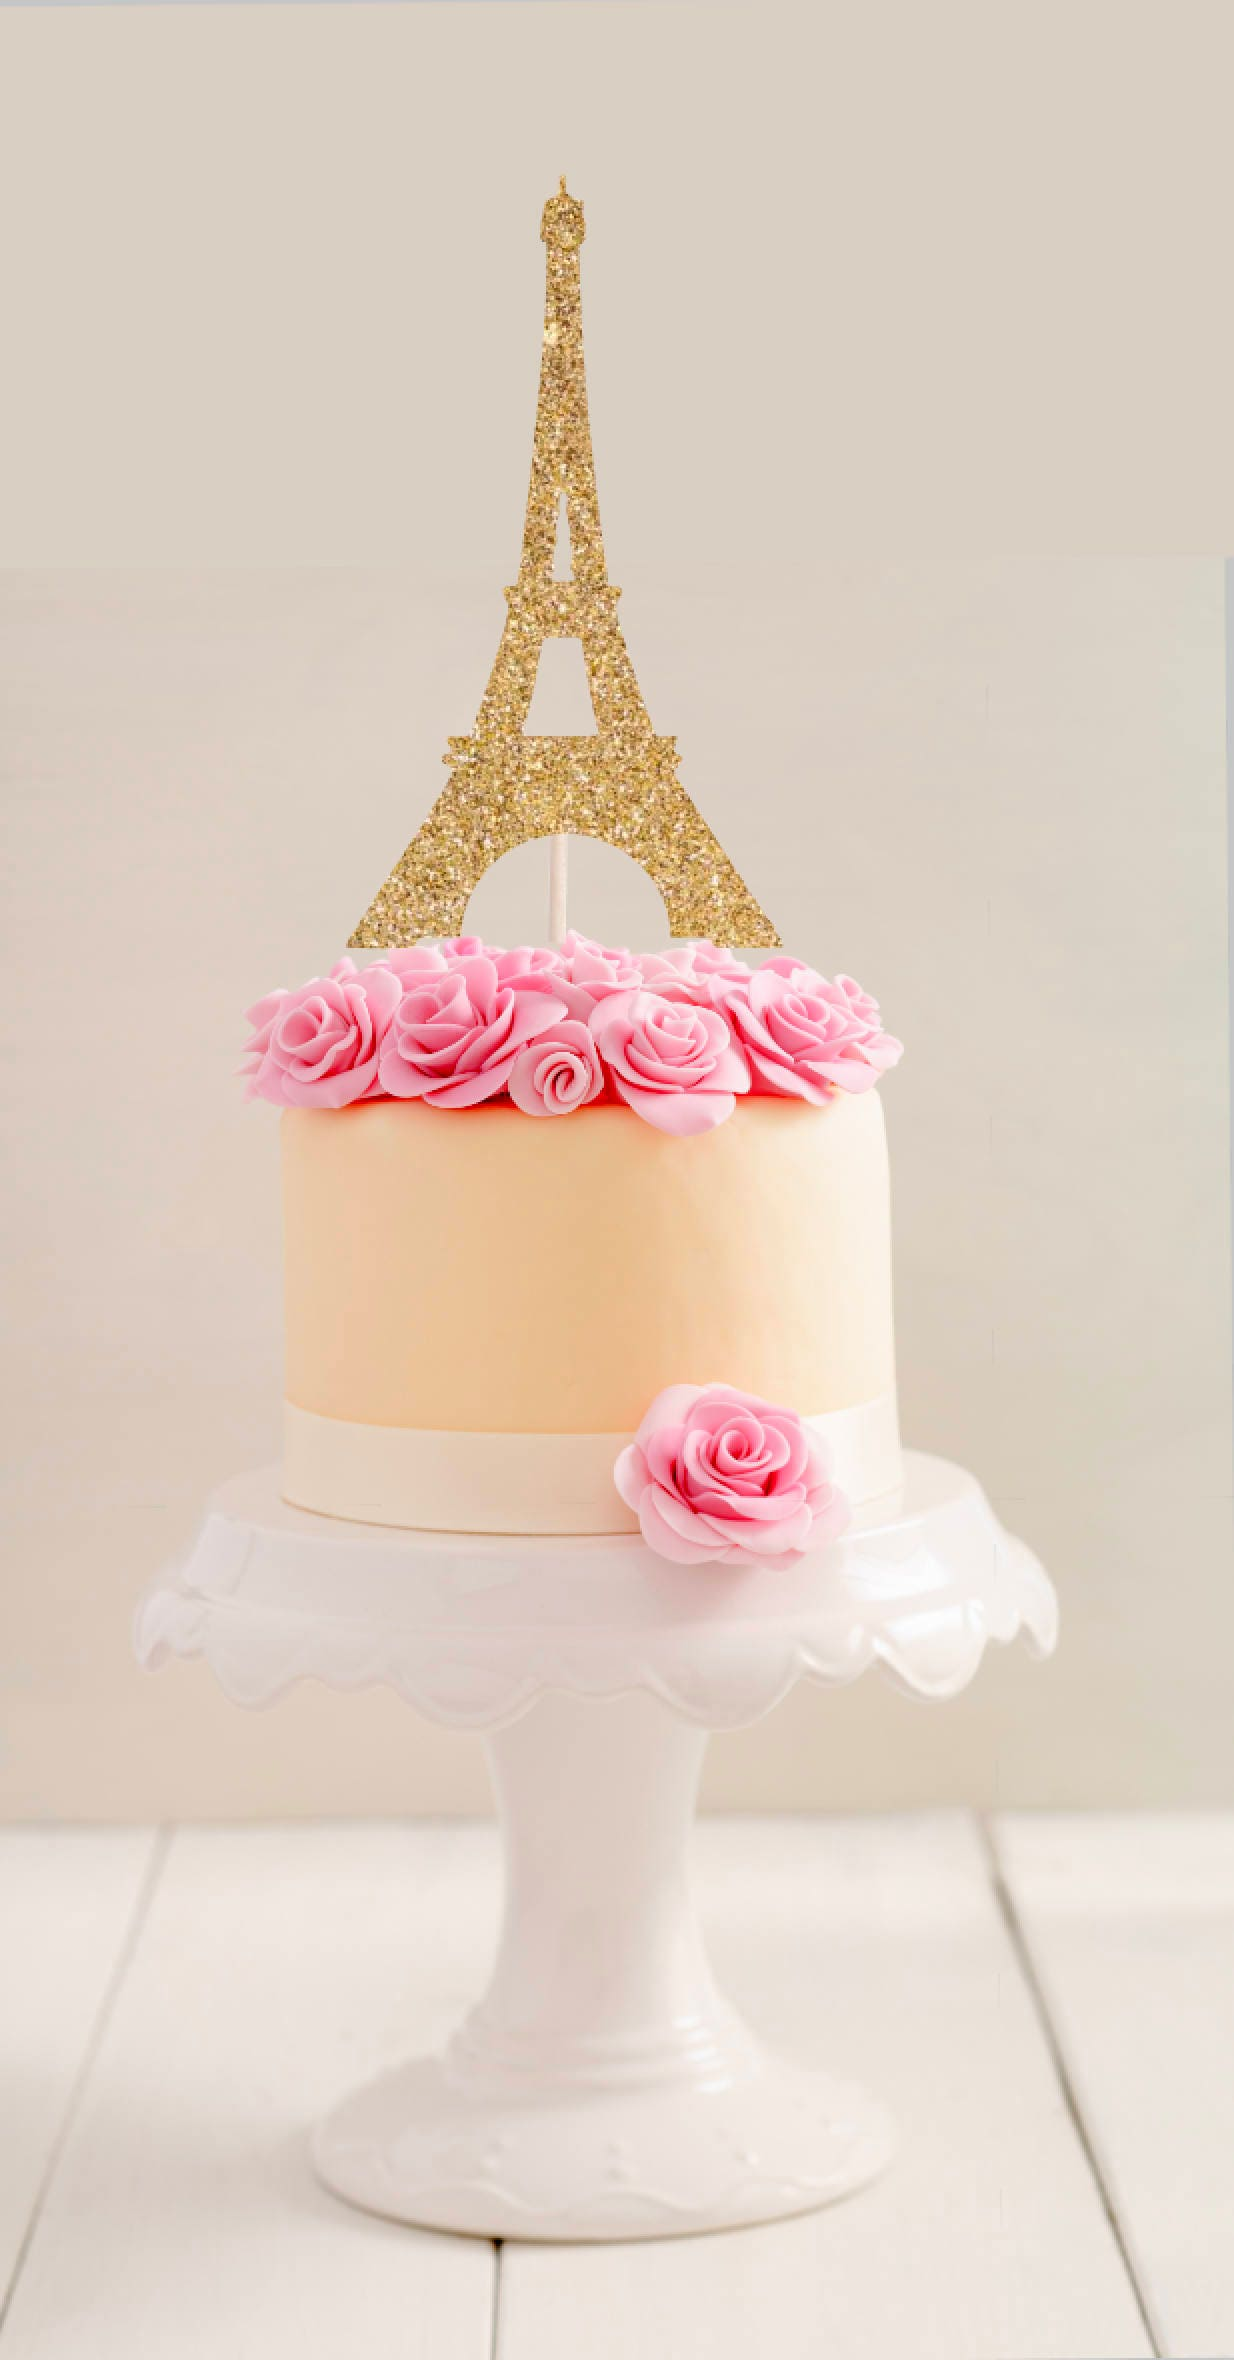 I Need Ideas For Decorating My Living Room: Eiffel Tower Cake Topper L Paris Cake Topper L Party Cake